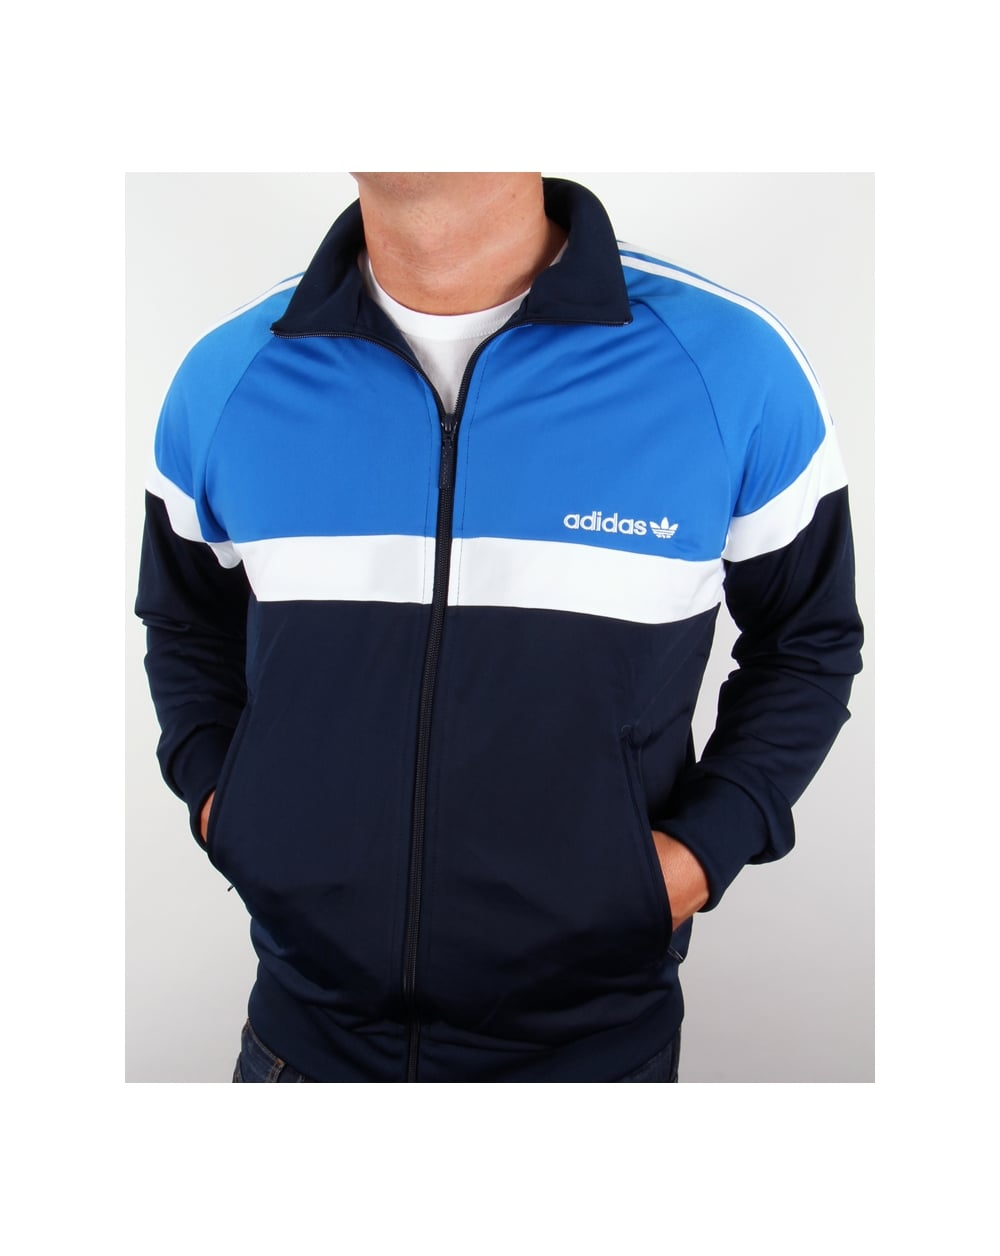 Adidas Originals Itasca Track Top Navy Royal Blue Tracksuit Jacket